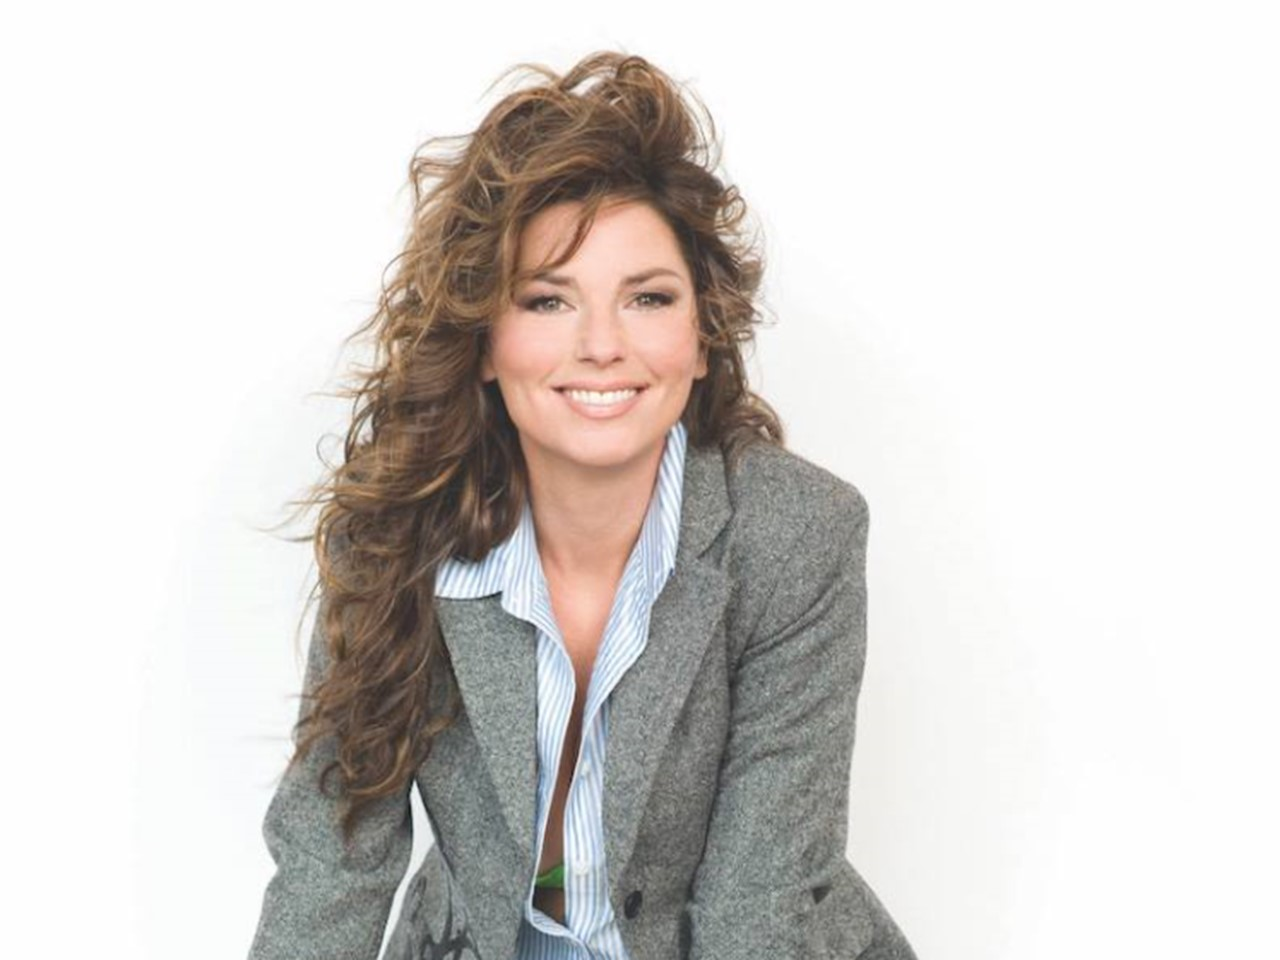 Shania Twain is Headed to NBC's 'The Voice'